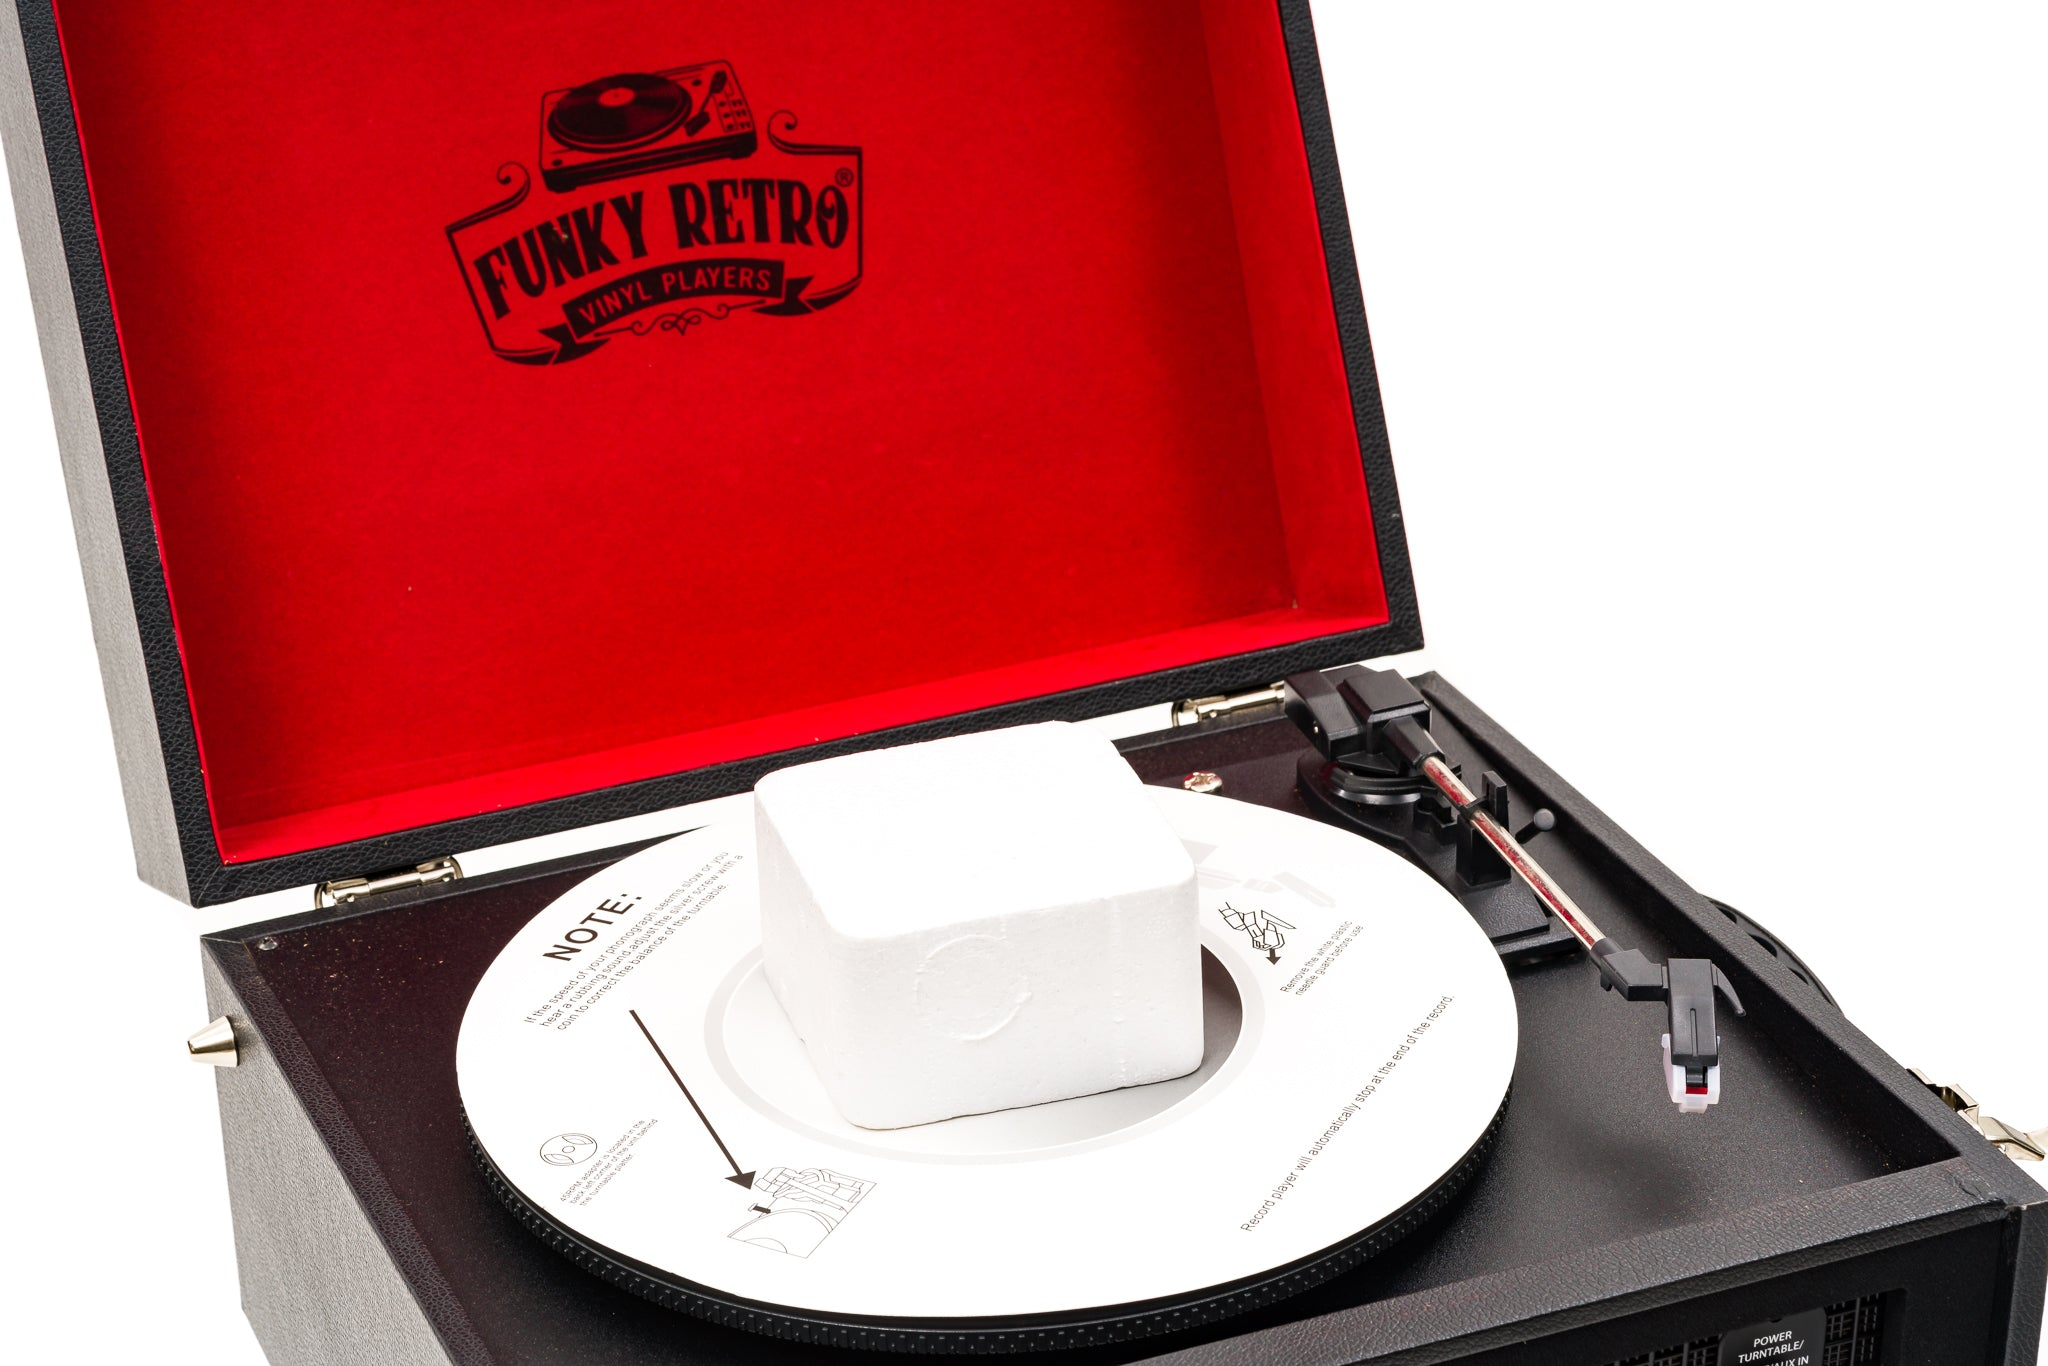 Designer Funky Retro Record / Vinyl Player / Turntable Black and Red